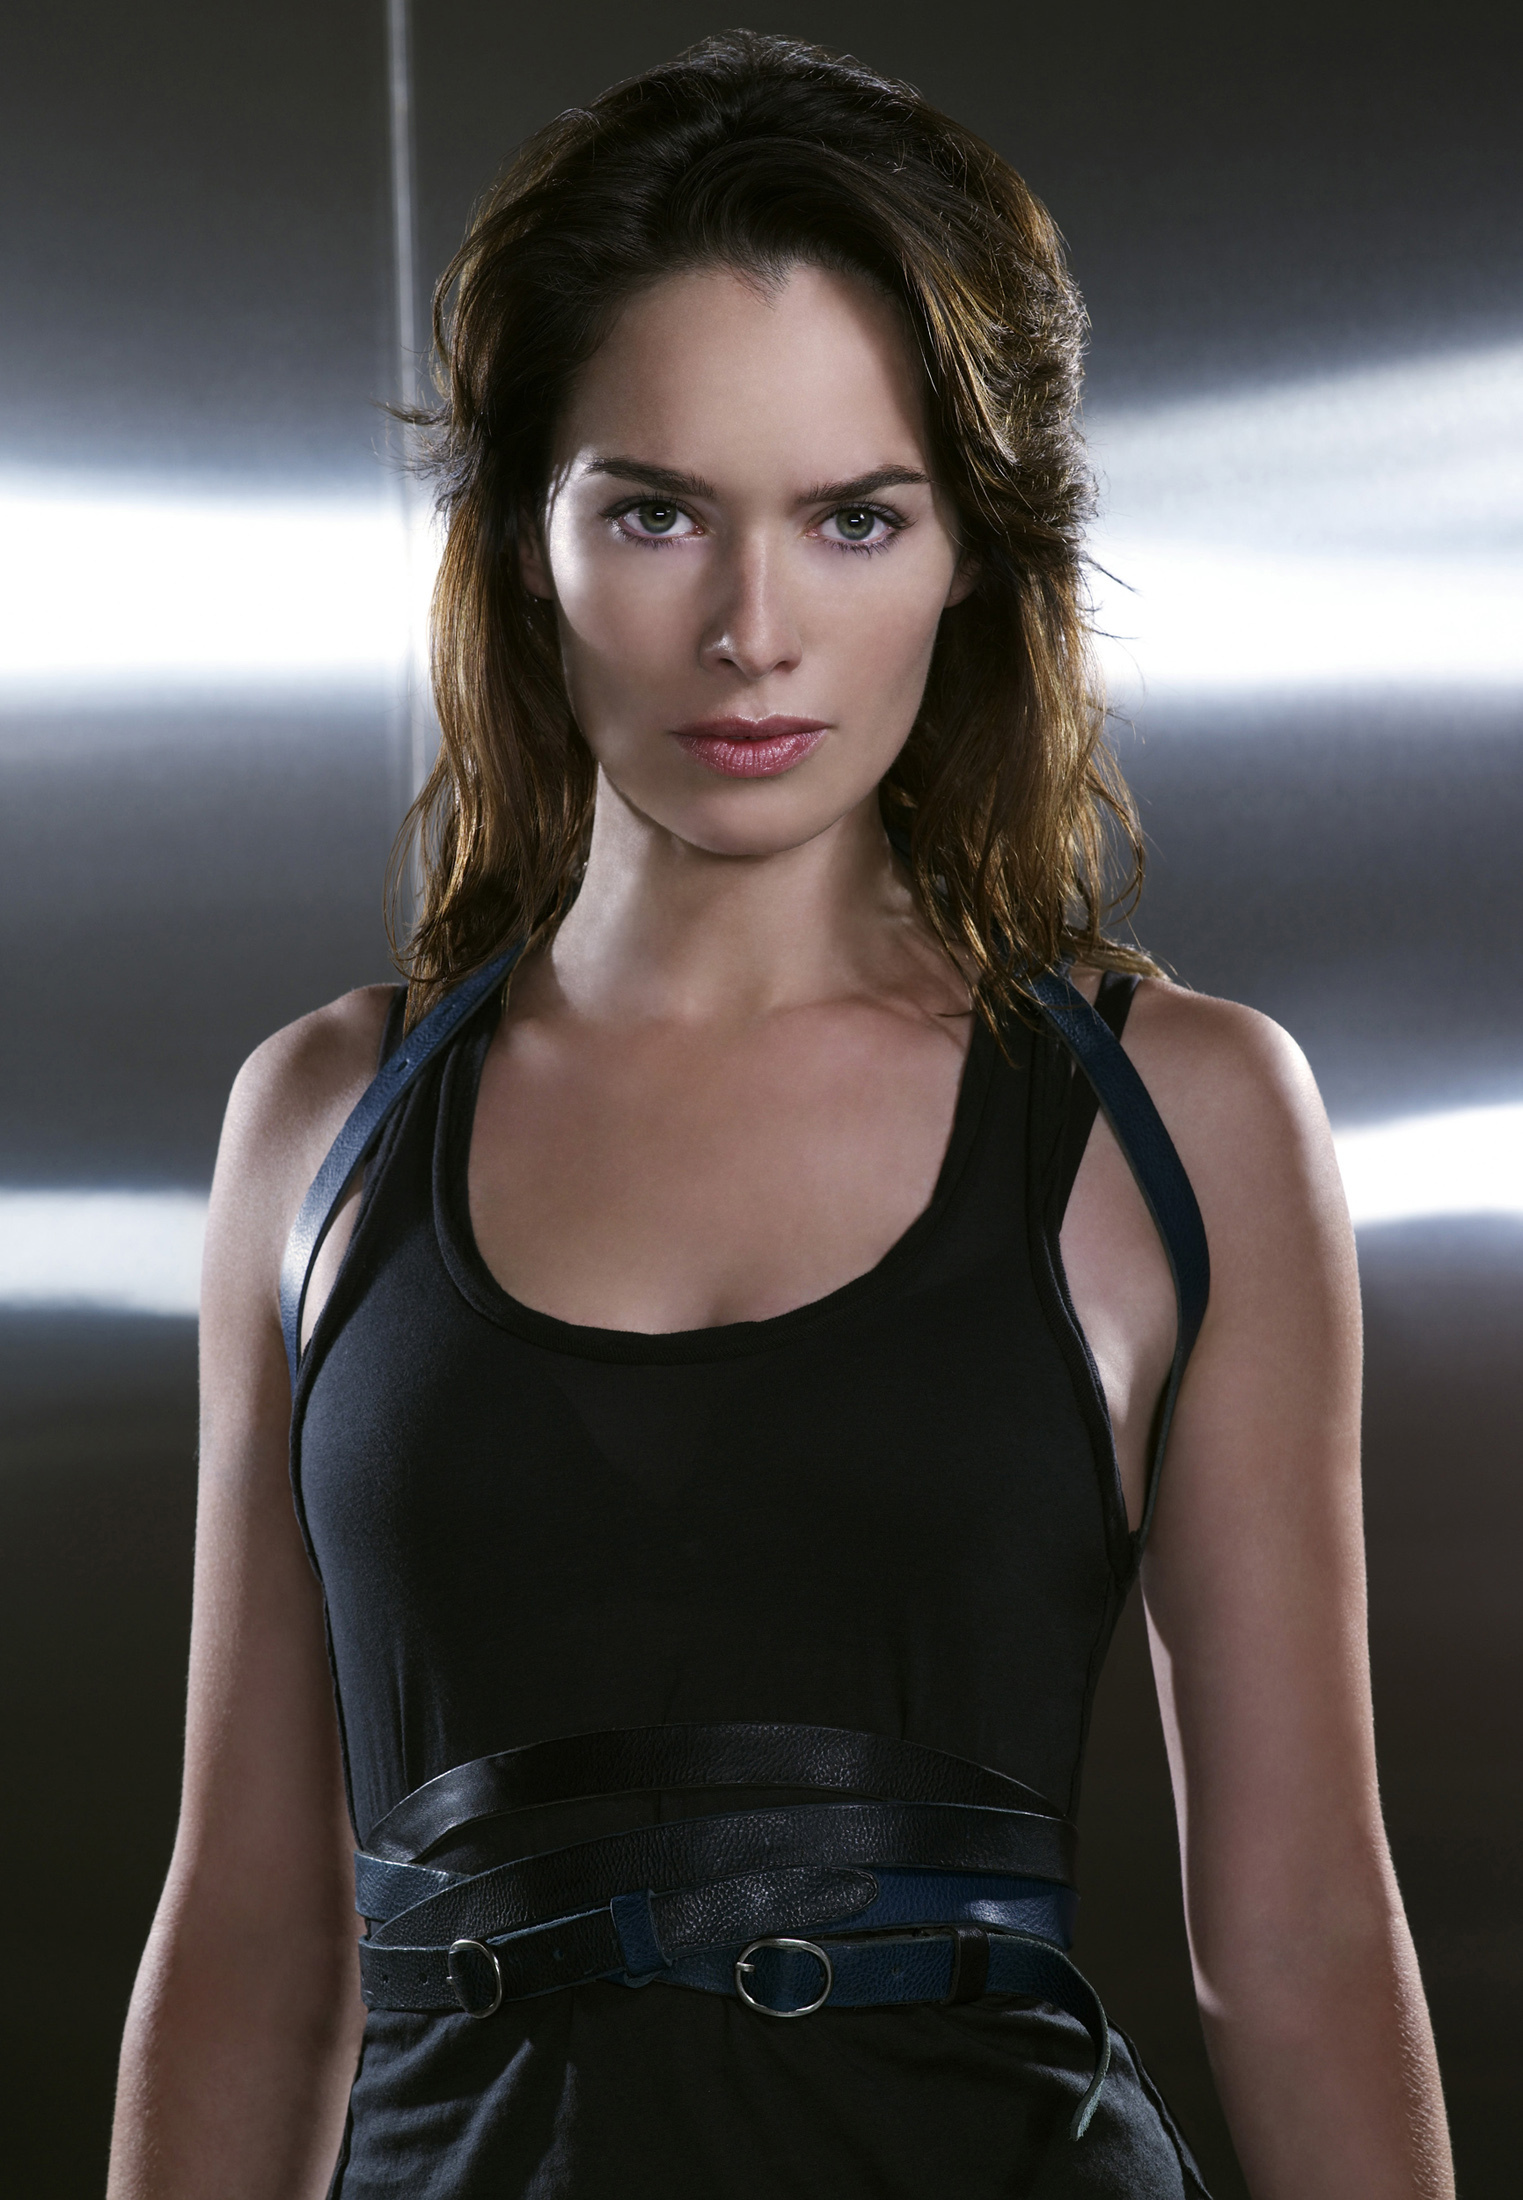 sarahconnor铃声_琳娜·海蒂 images terminator: the sarah connor chronicles hd